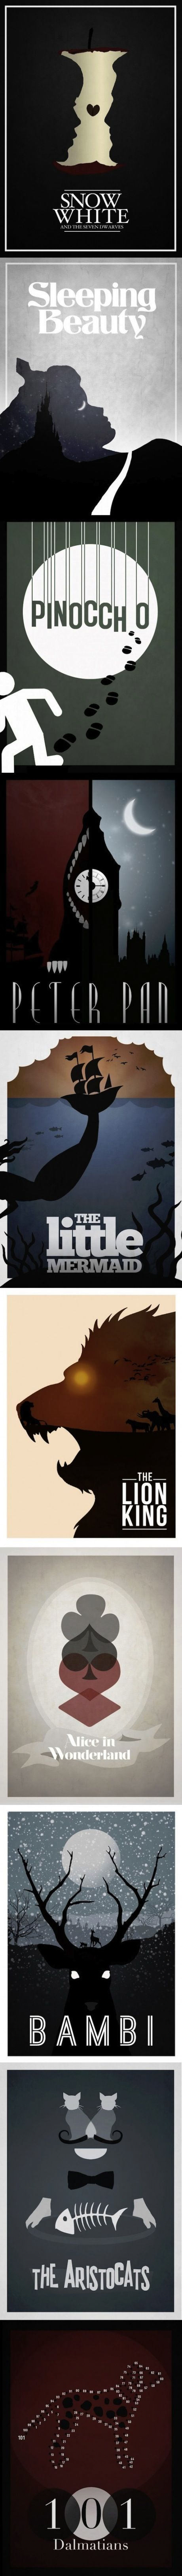 Simplistic Disney posters. I would blow these up and decorate with them.